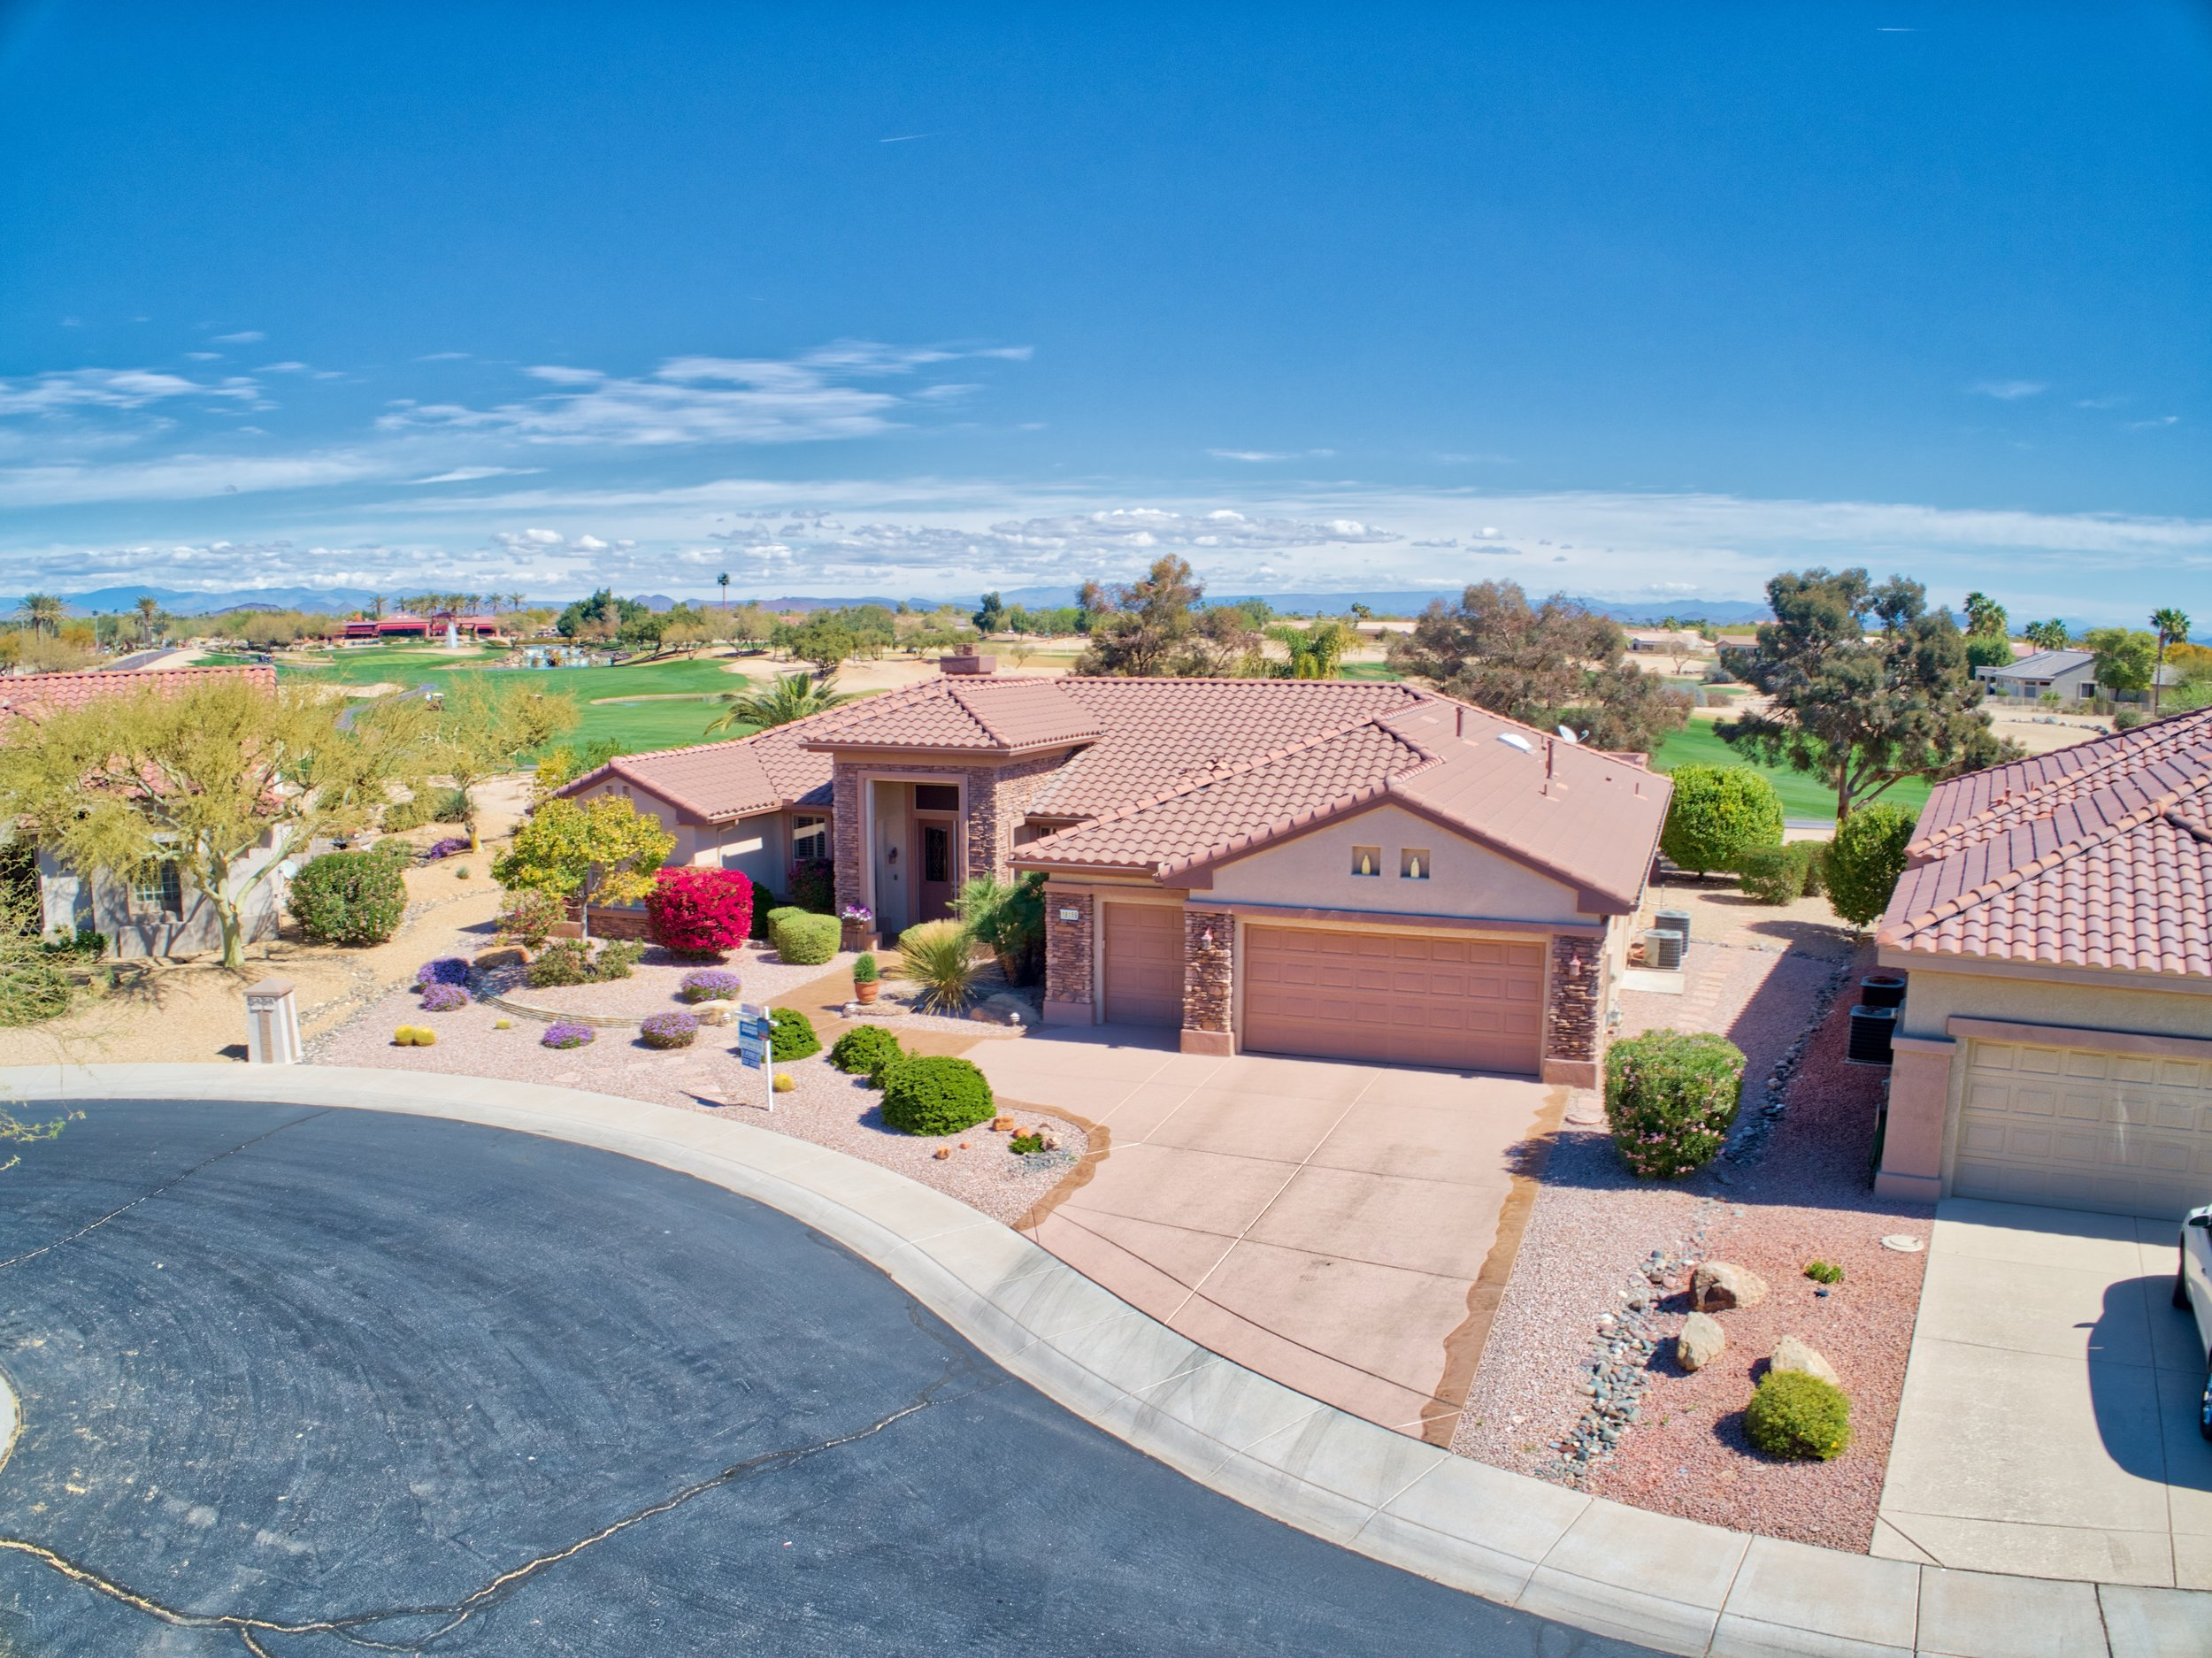 REAL ESTATE AERIAL PHOTOGRAPHY FOR ONLY $19.99.. FIND OUT HOW TODAY